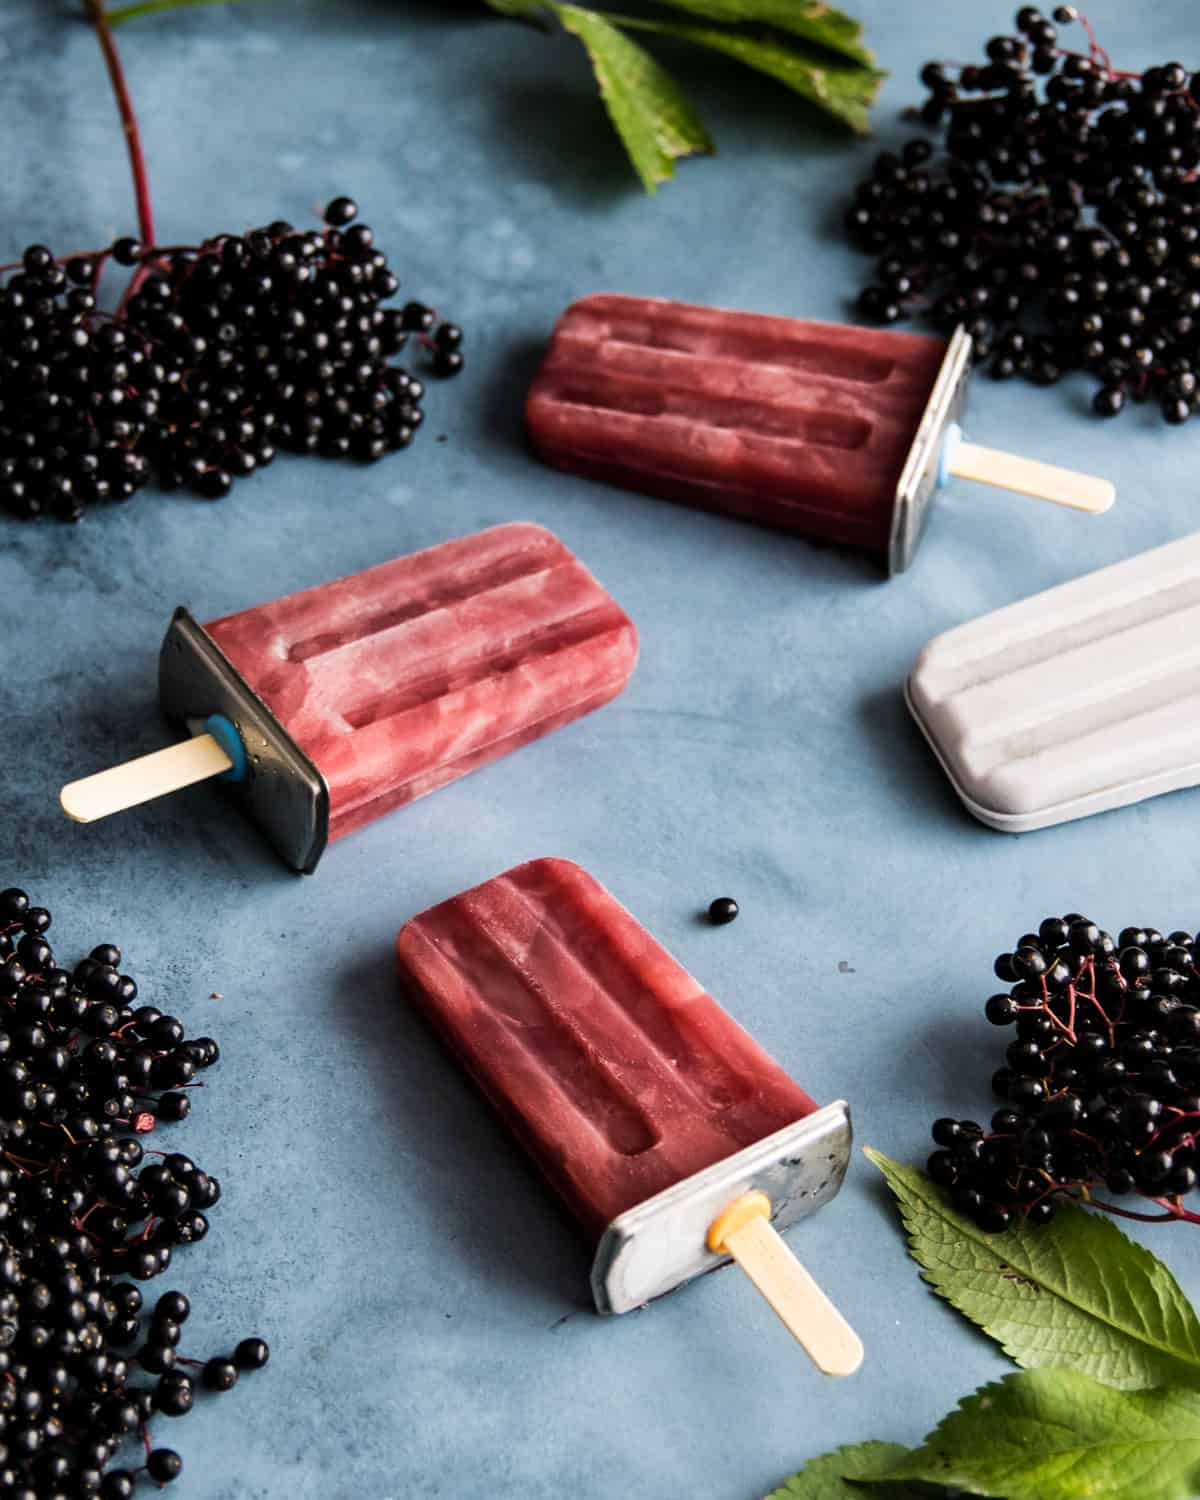 three elderberry popsicles on a table with fresh elderberries